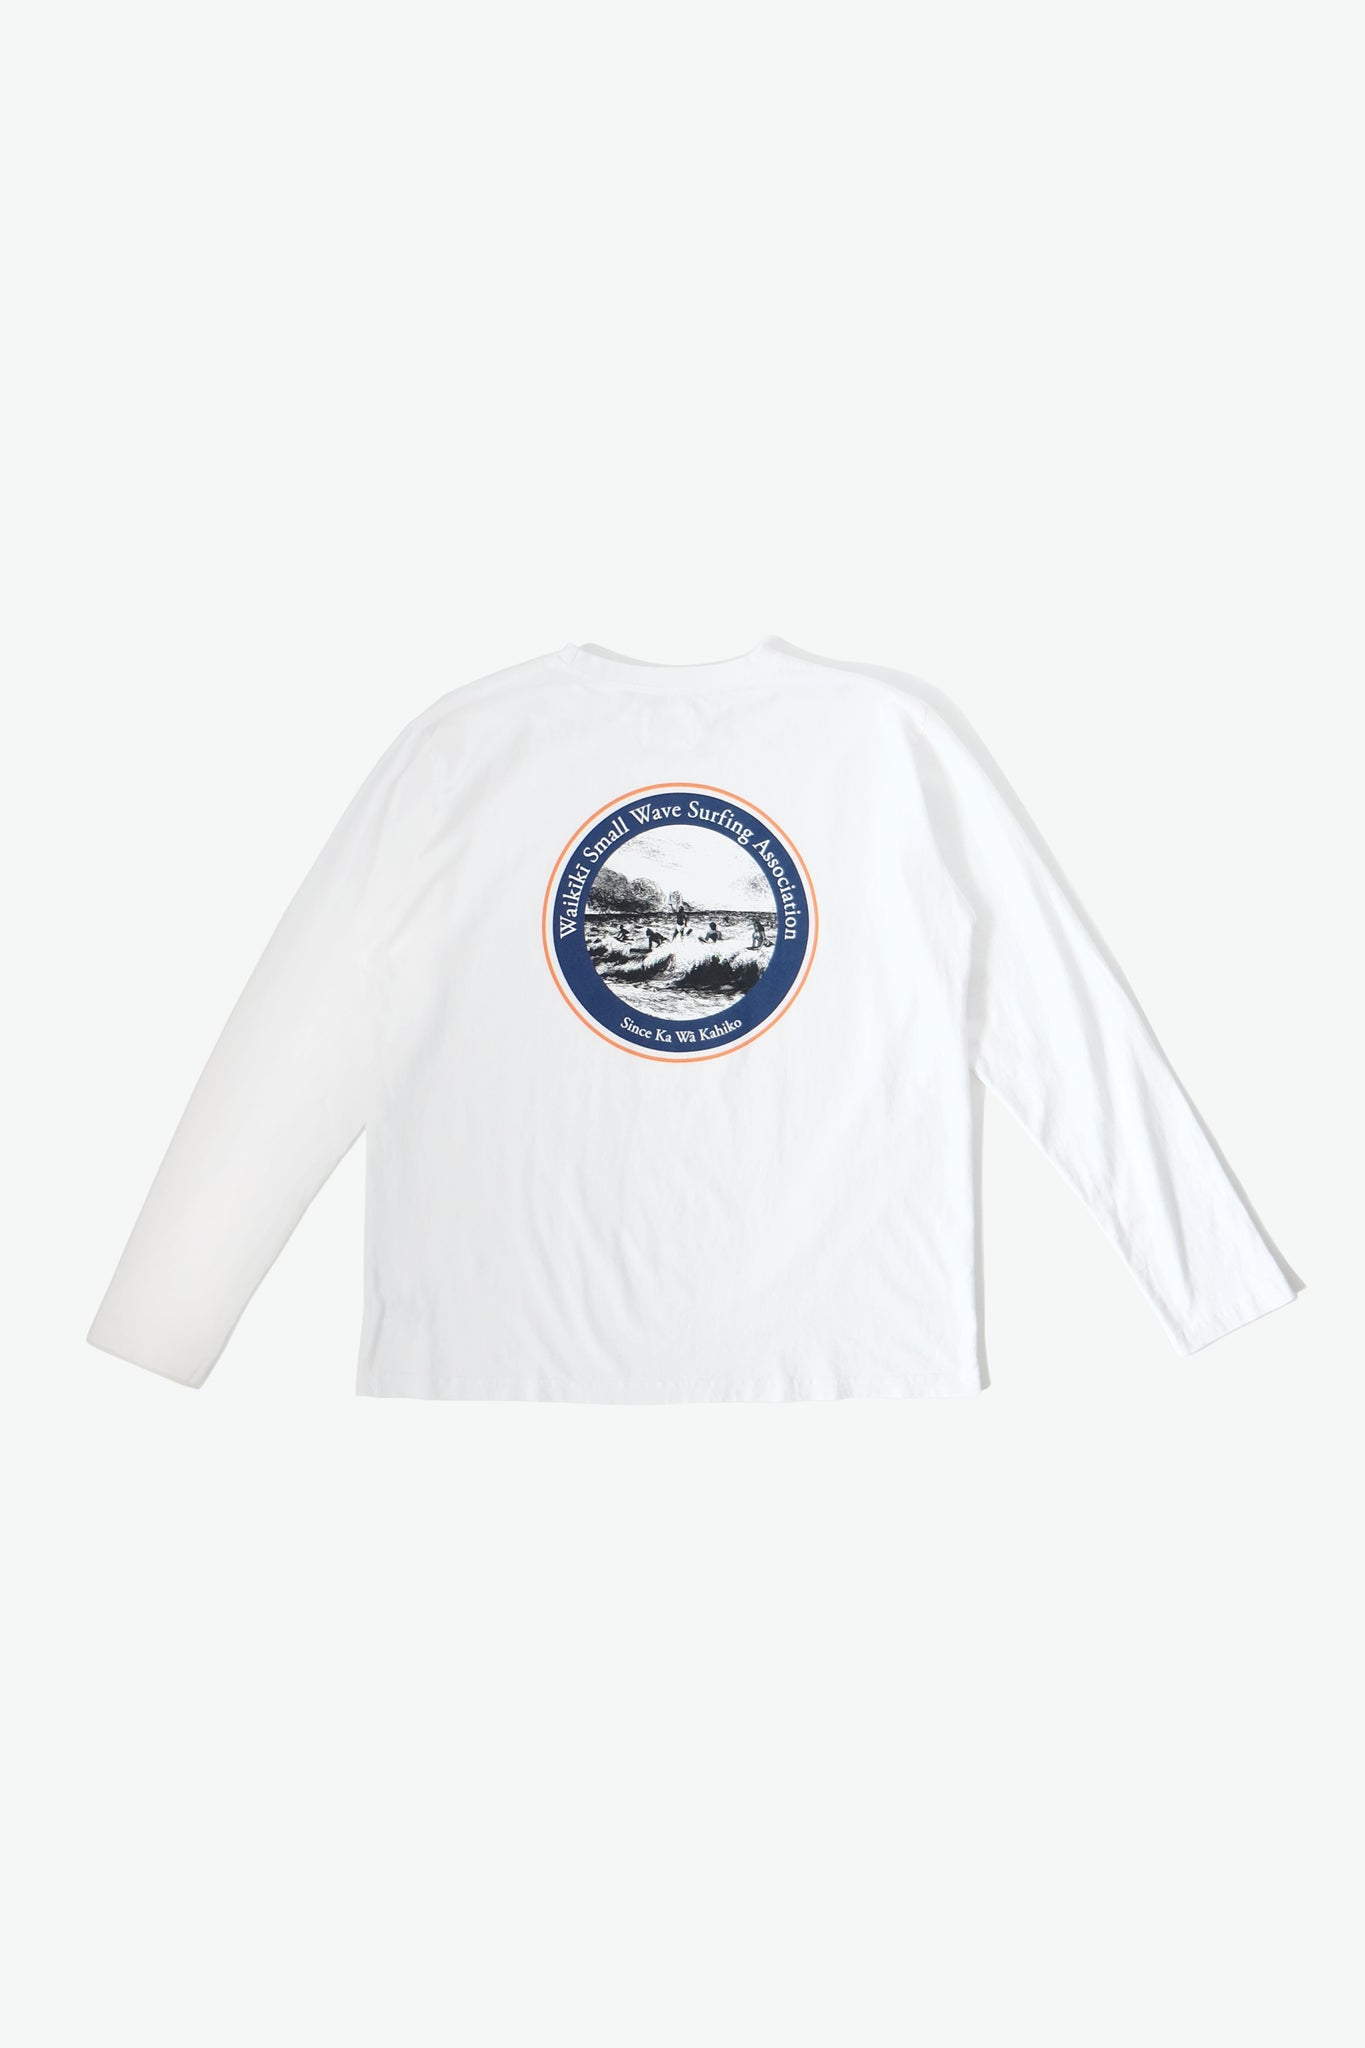 Long Sleeve T-Shirt - WSWS - White